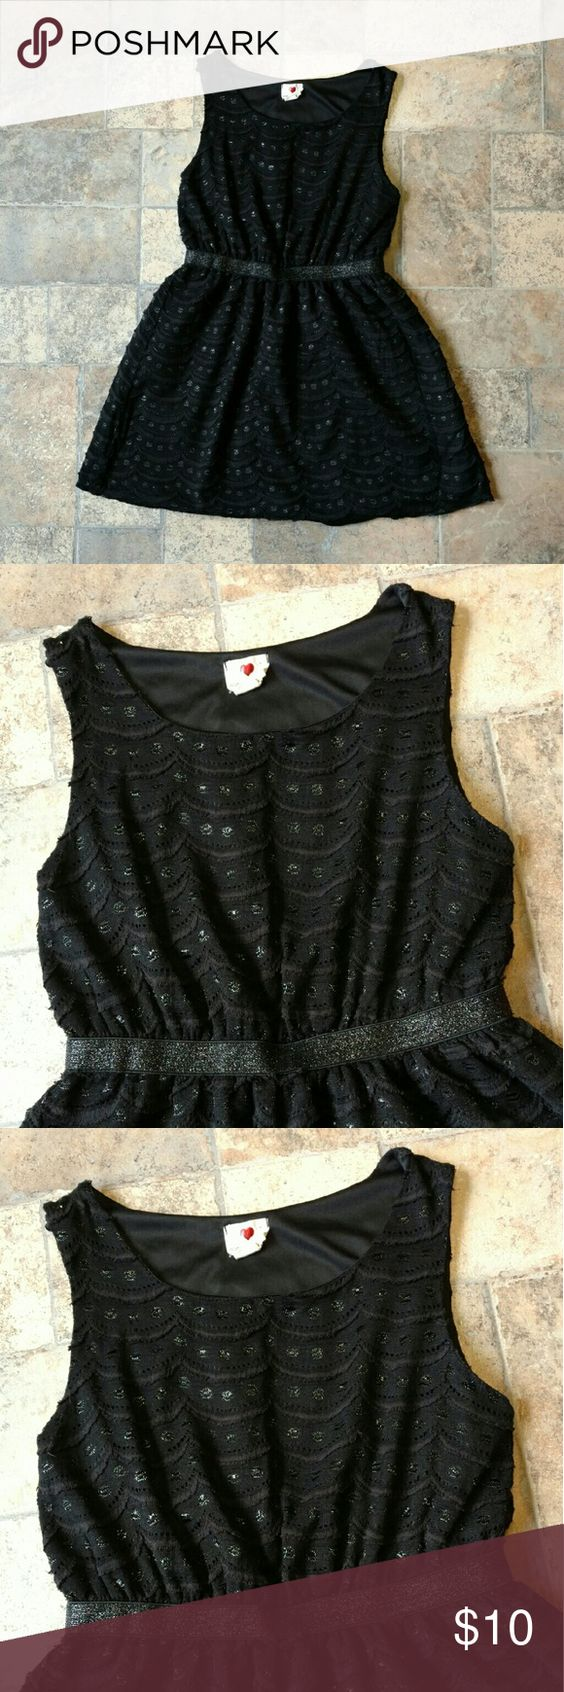 """Cute black mini dress This dress is in great condition. Black with shiny black detailing. Size large. 30"""" long. Measures 16"""" armpit to armpit. Shell: 40% cotton, 10% rayon, 50% nylon. Lining: 100% polyester. Any questions, just ask! one clothing Dresses Mini"""